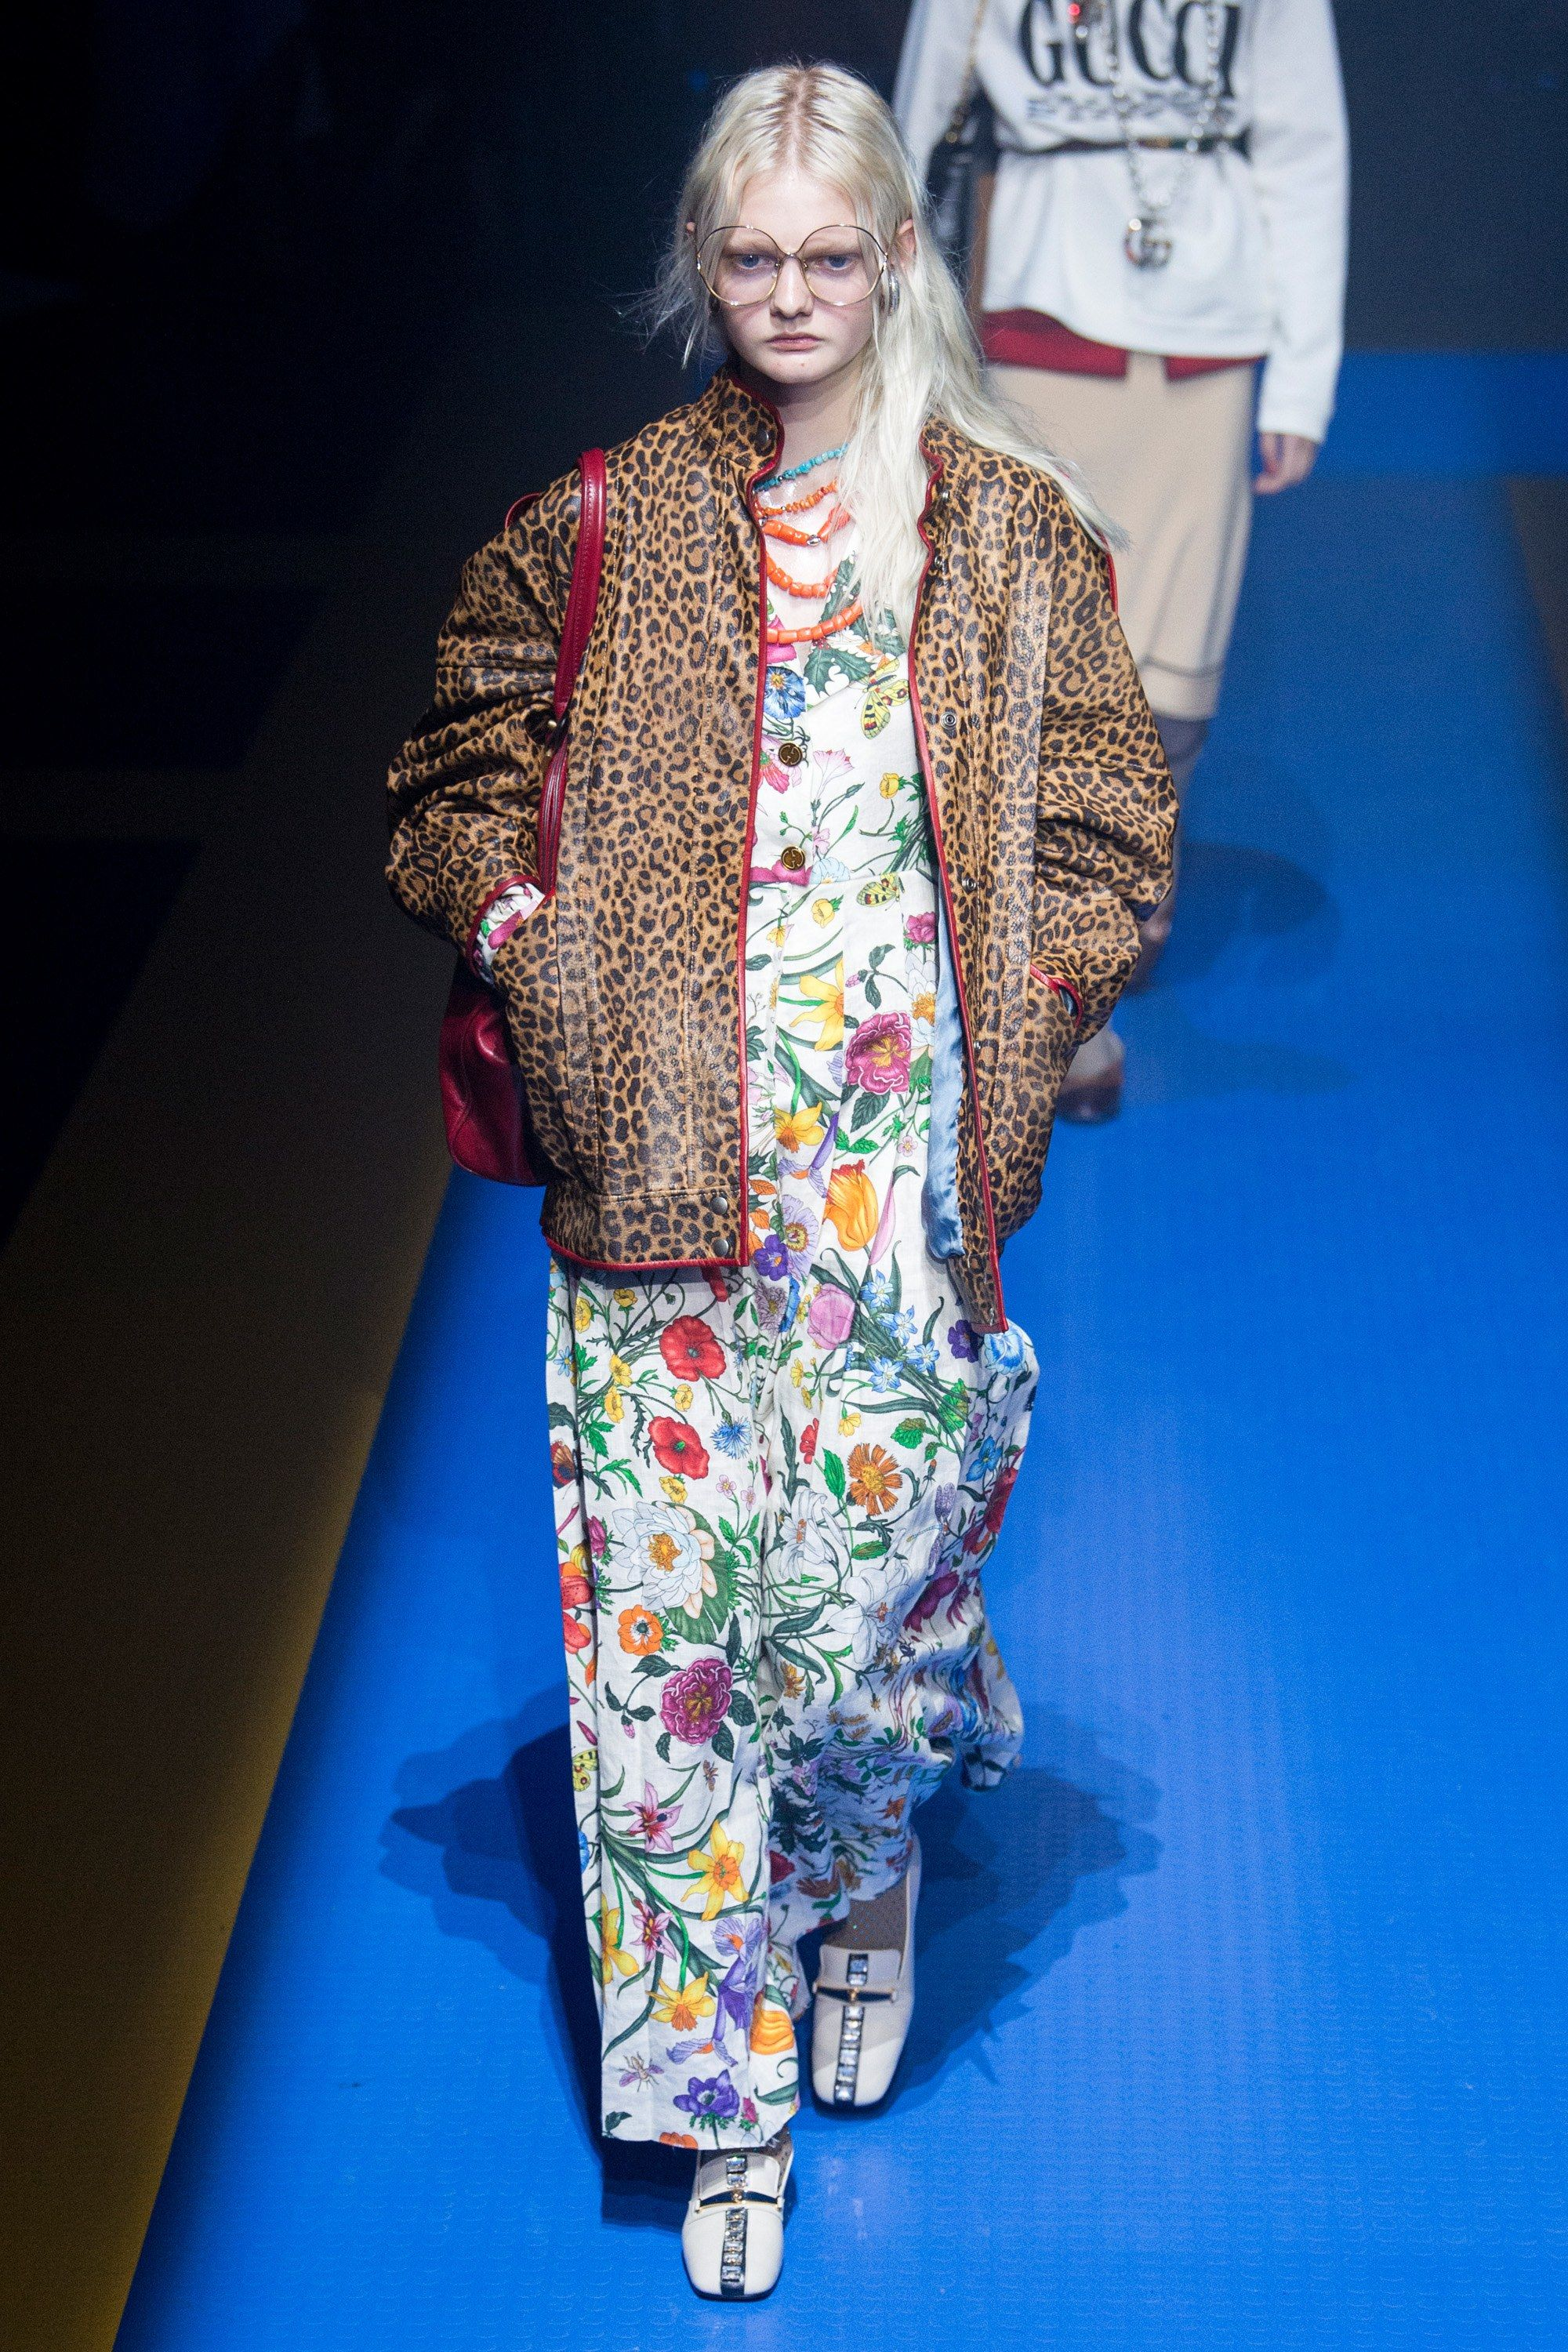 077cf14b1 Fashion Trend for Bohemian floral. Gucci Spring 2018 Menswear Collection  Photos - Vogue